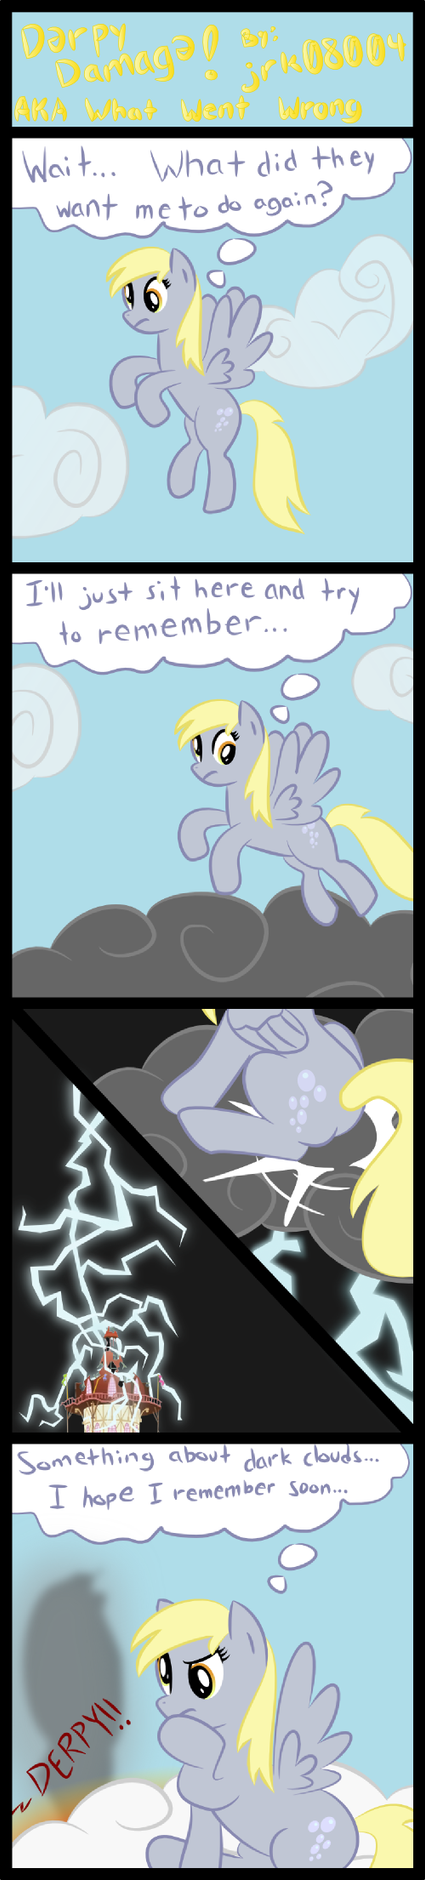 Derpy Damage AKA What went wrong by jrk08004